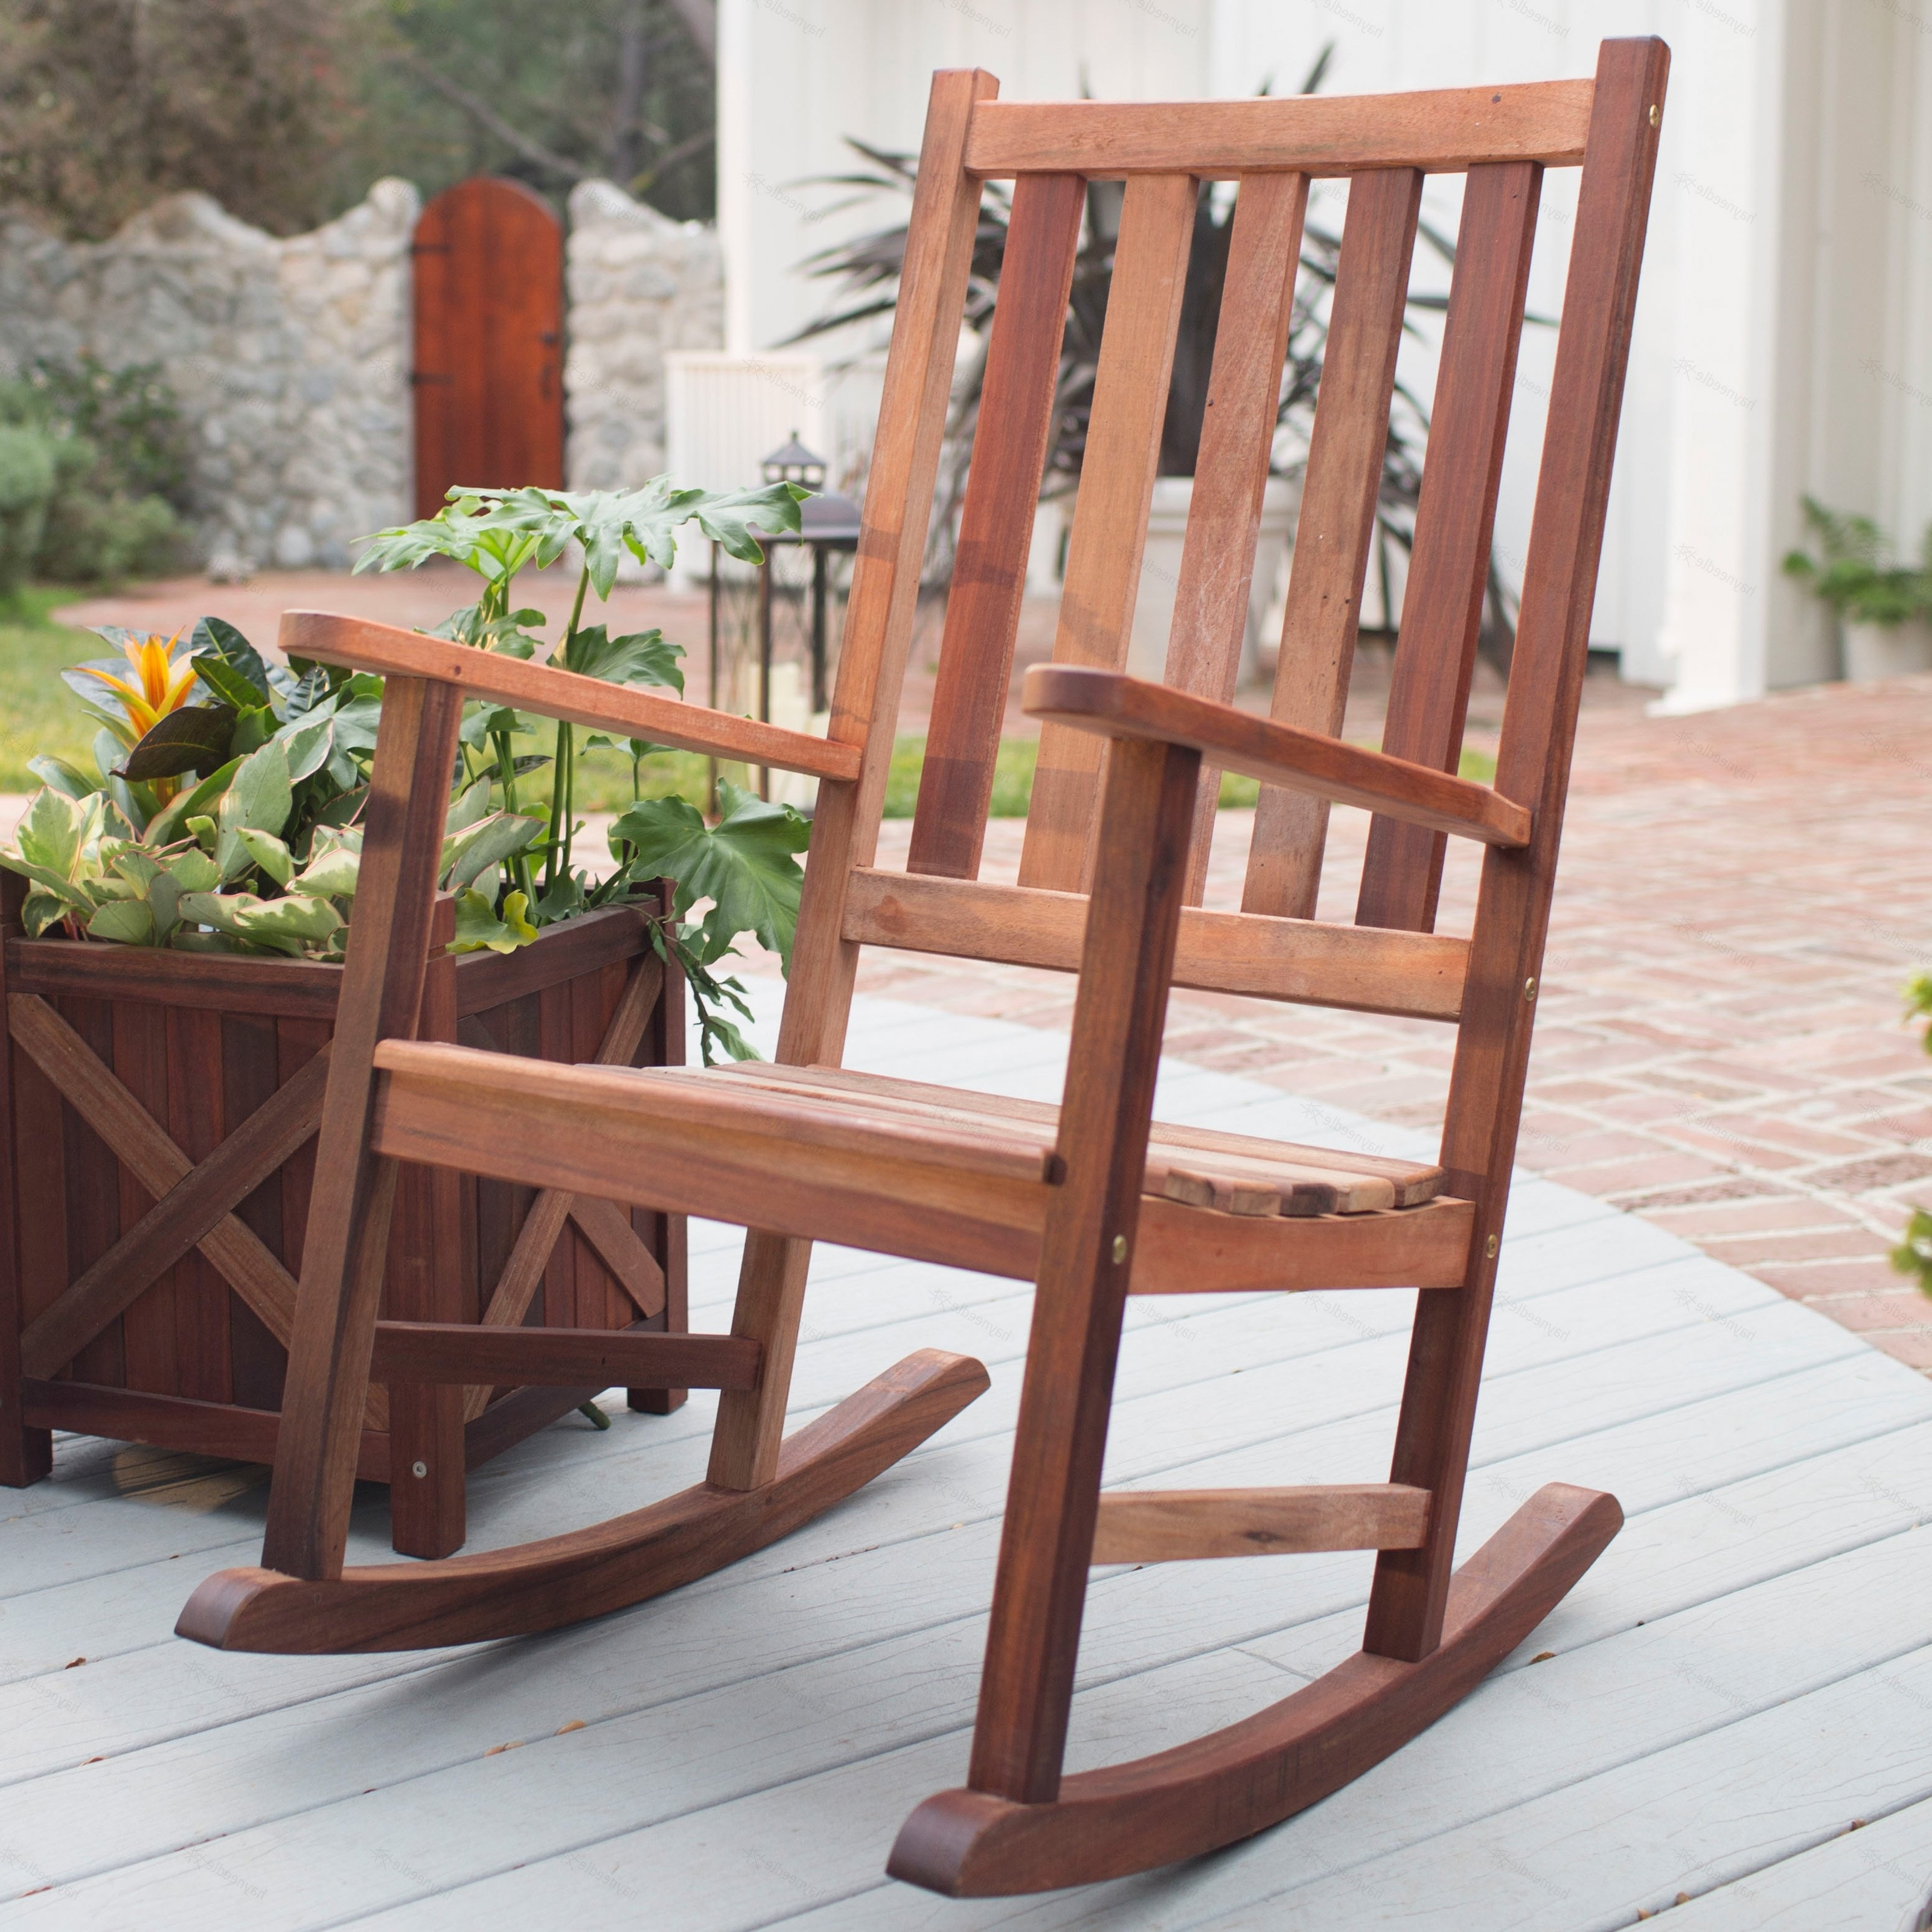 Rocking Chairs For Outside Intended For Recent Magnificent Outside Rocking Chairs 24 718kr Fd1fl Sl (View 12 of 20)